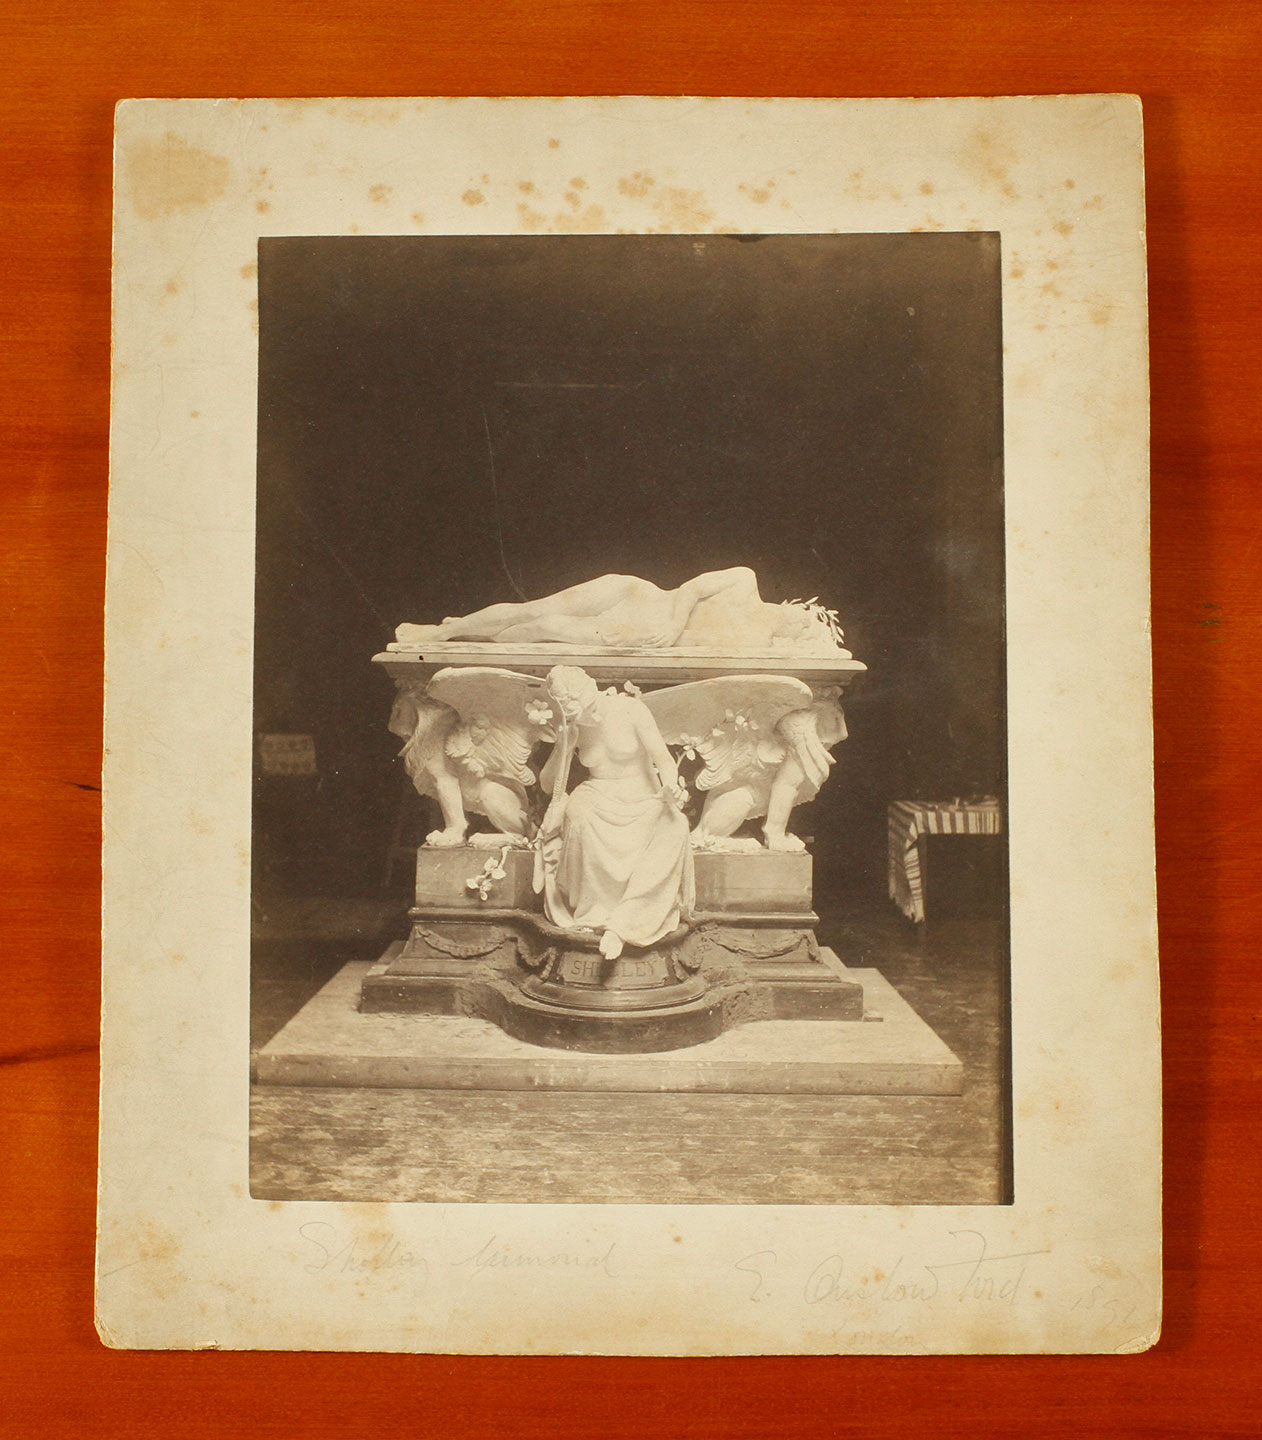 Photograph of Onslow Ford's 'Shelley Memorial' taken in his studio